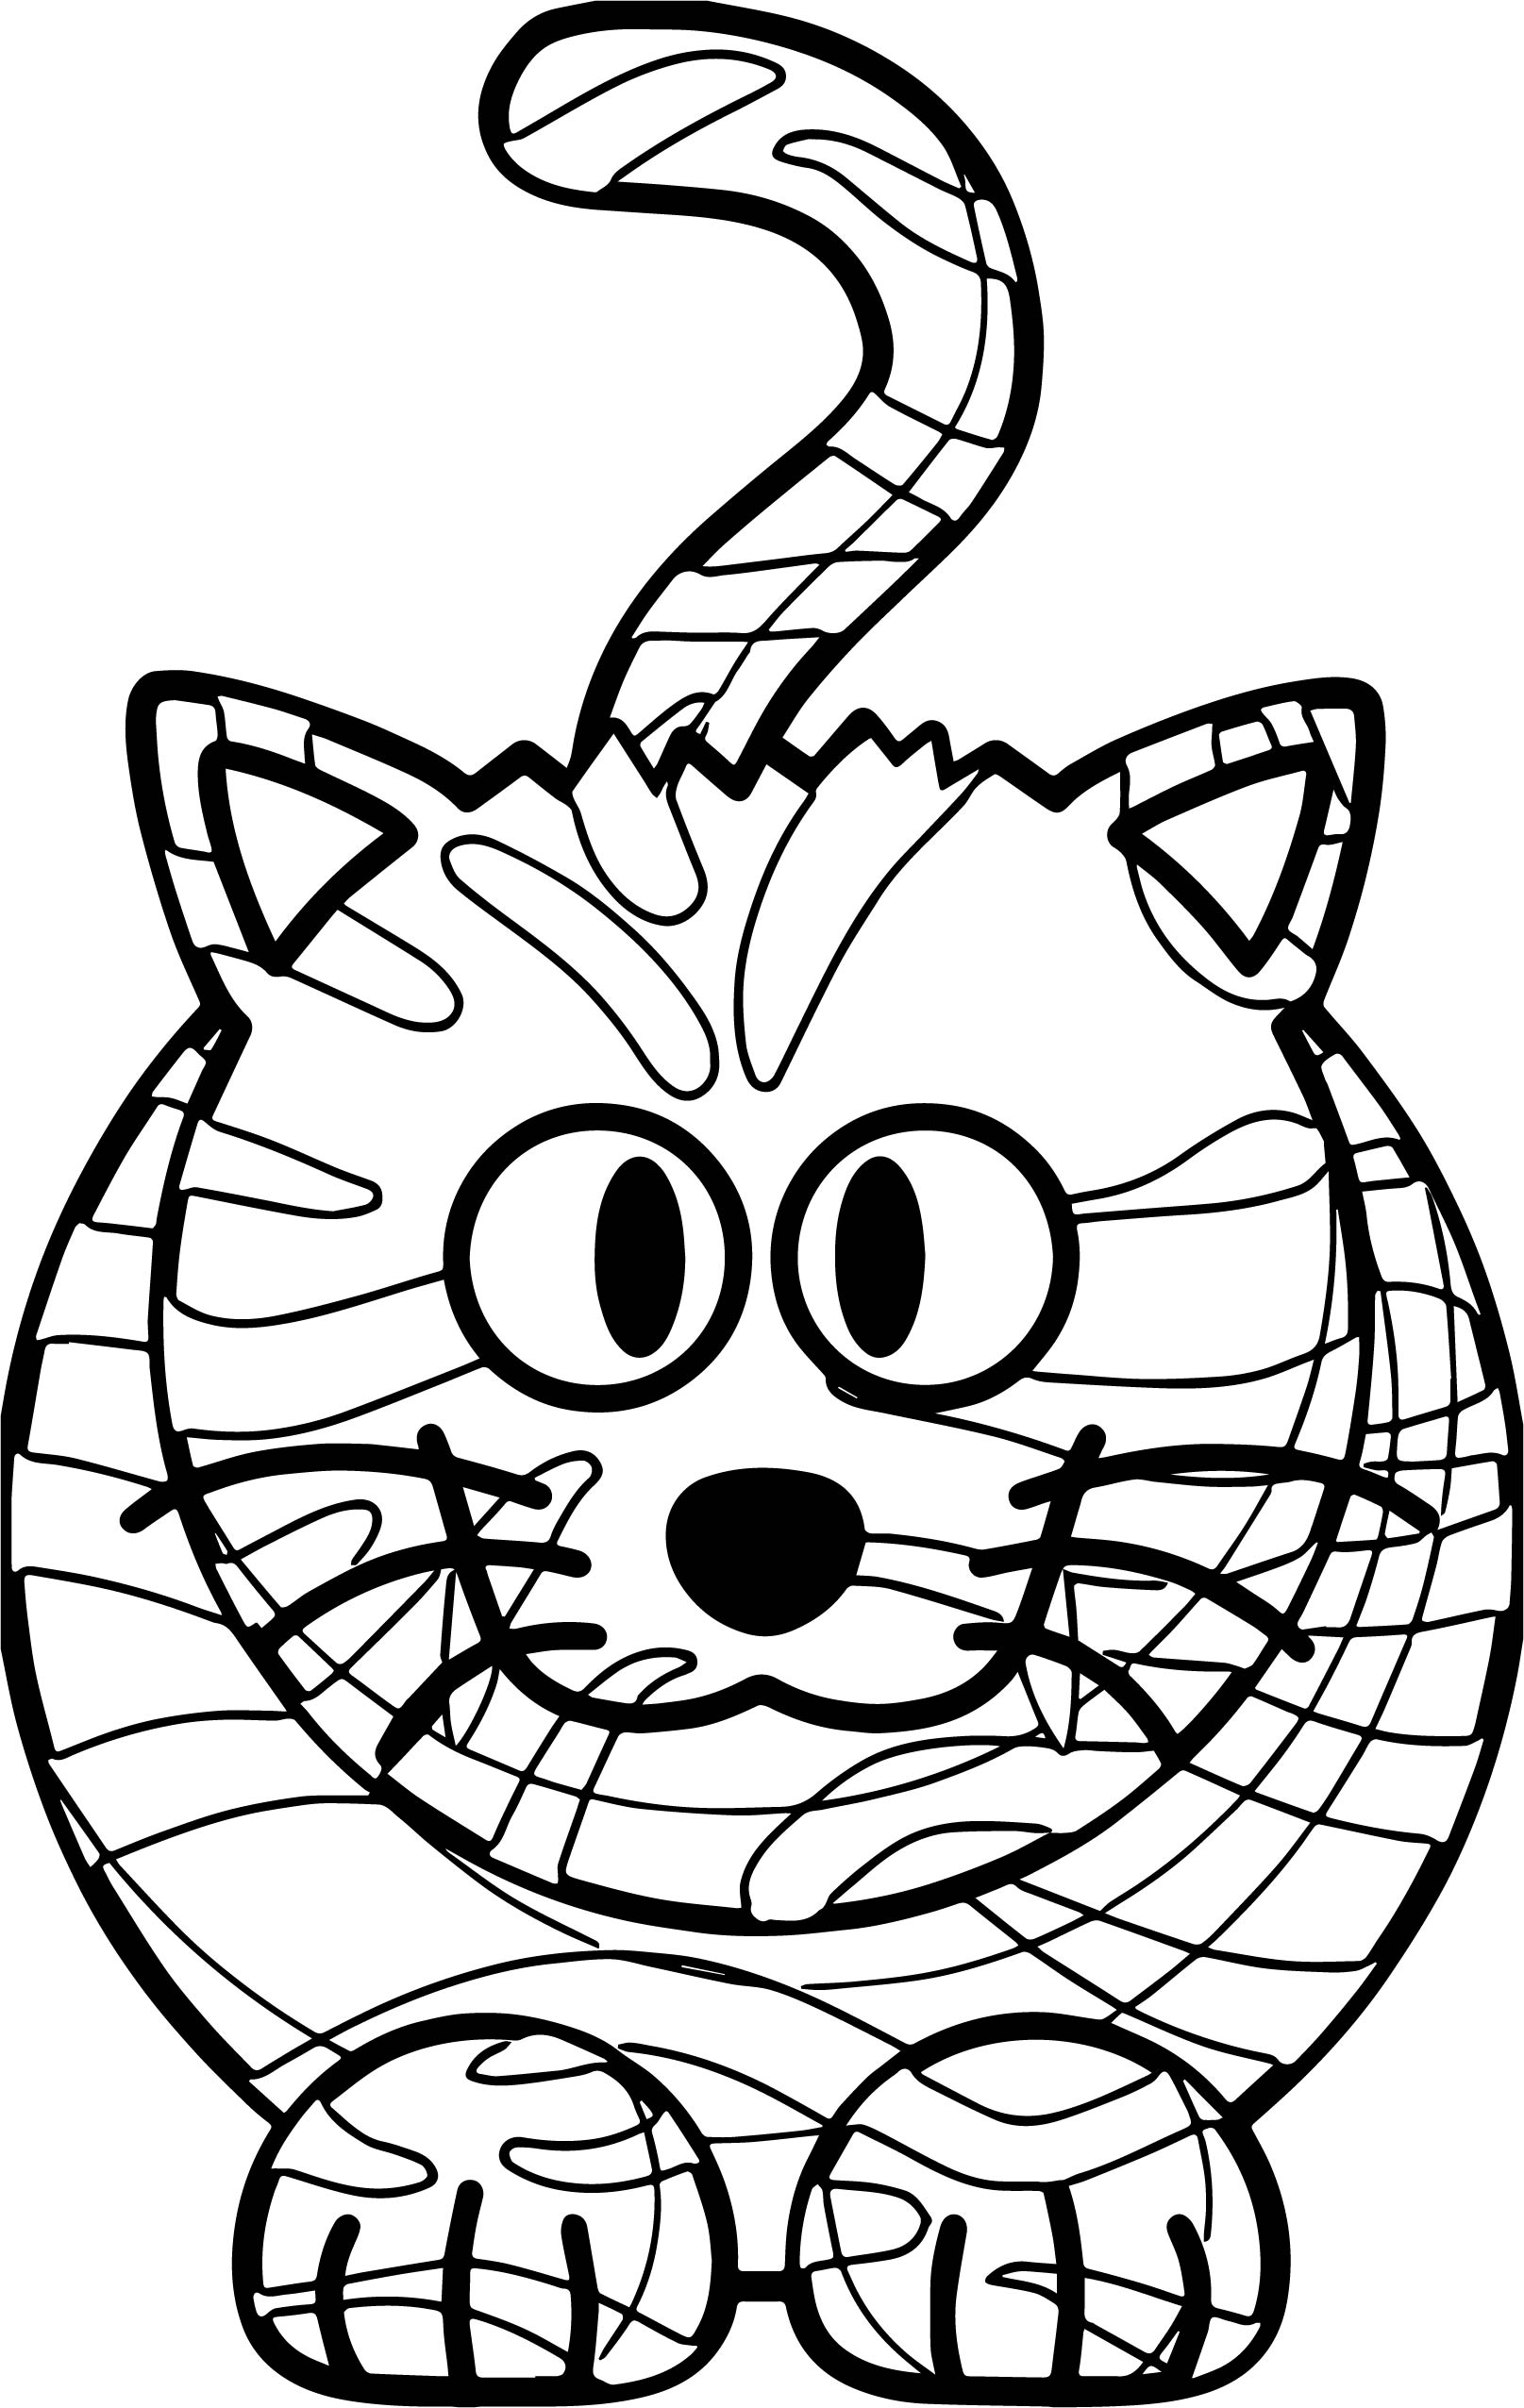 cat dreaming coloring pages - photo#47